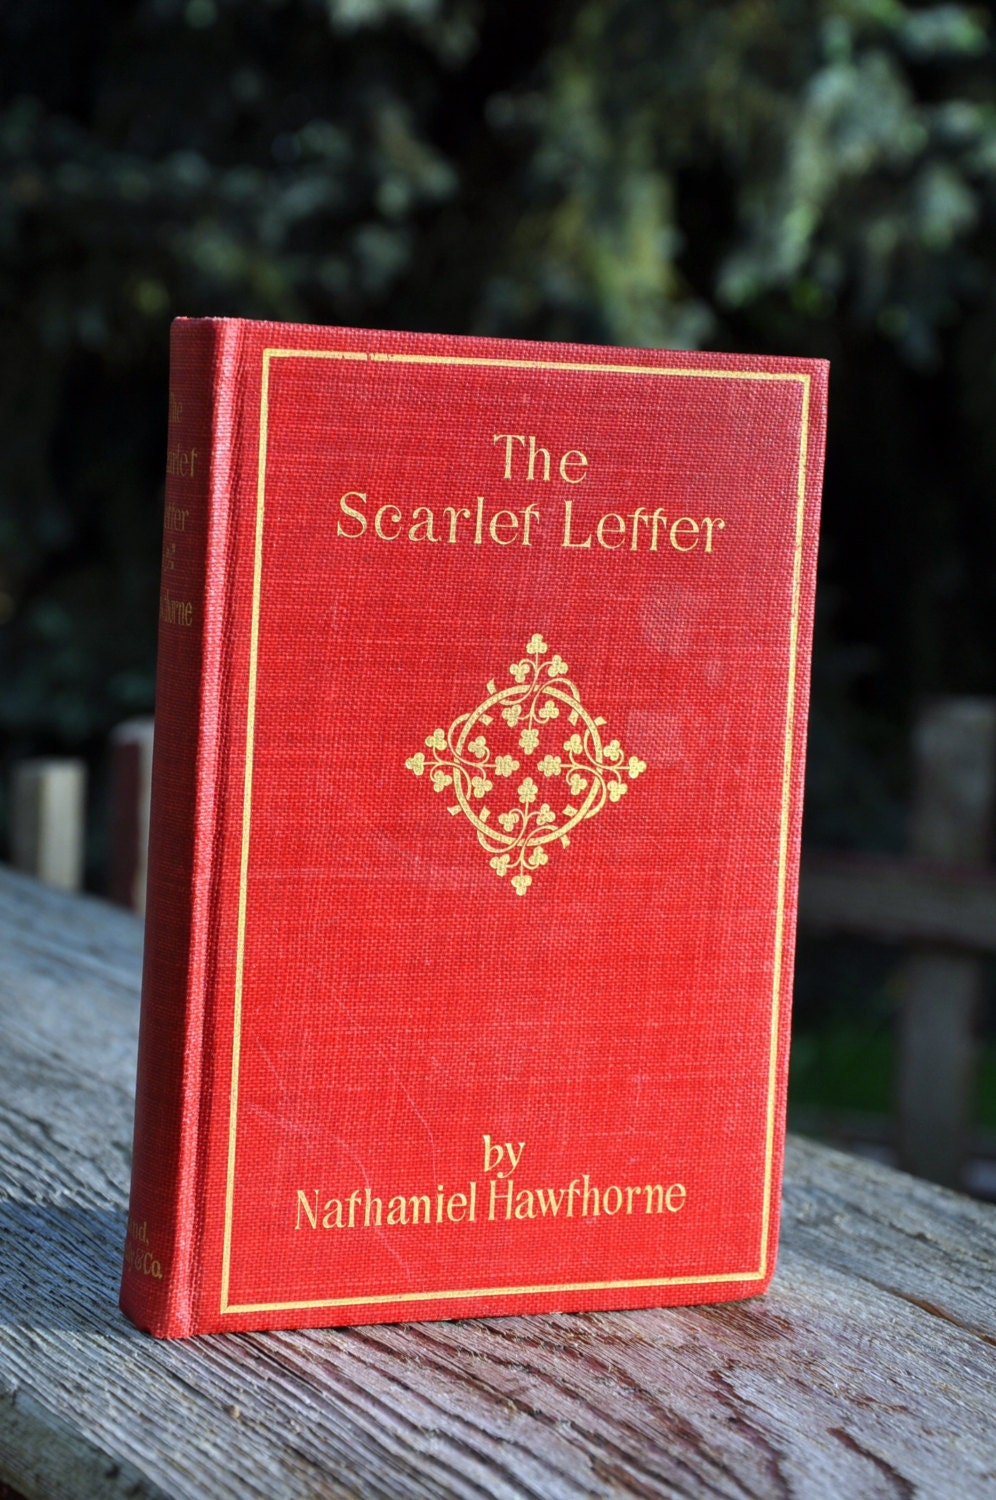 a book review of the scarlet letter First published in 1850, the scarlet letter is nathaniel hawthorne's masterpiece and one of the greatest american novels it's themes of sin, guilt and redemption.